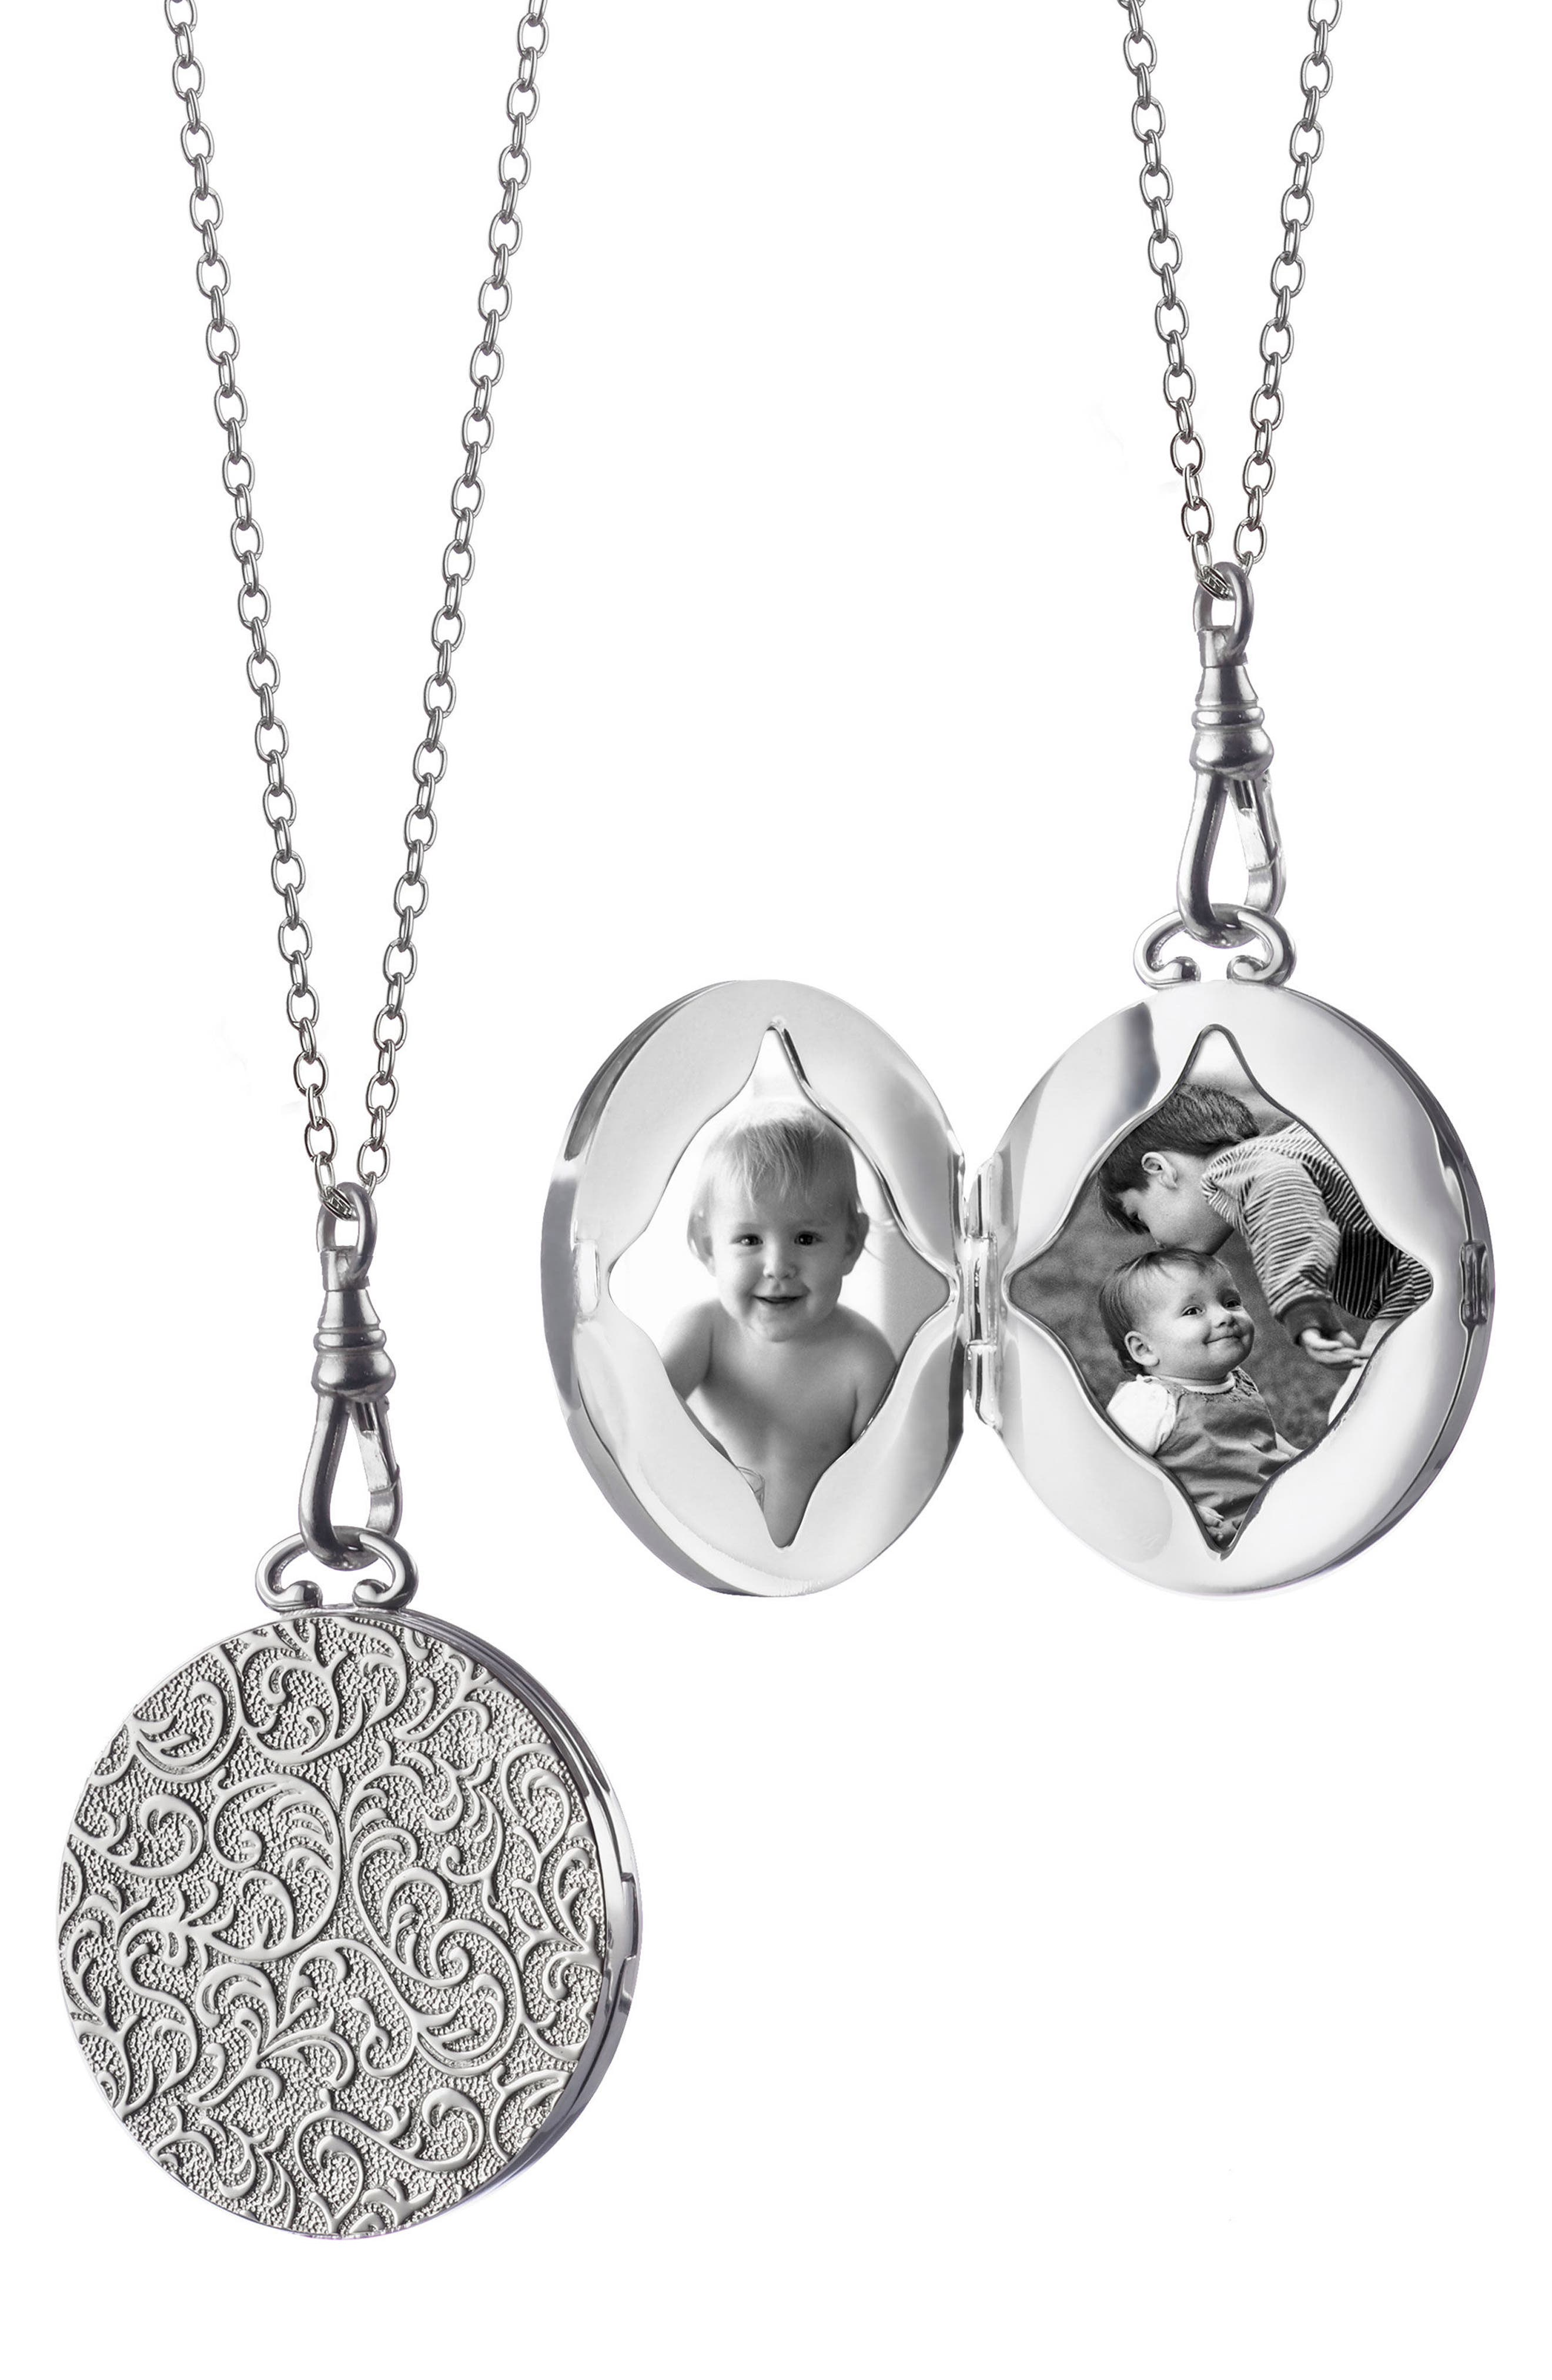 Swirling Vine Round Locket Necklace,                             Main thumbnail 1, color,                             Sterling Silver